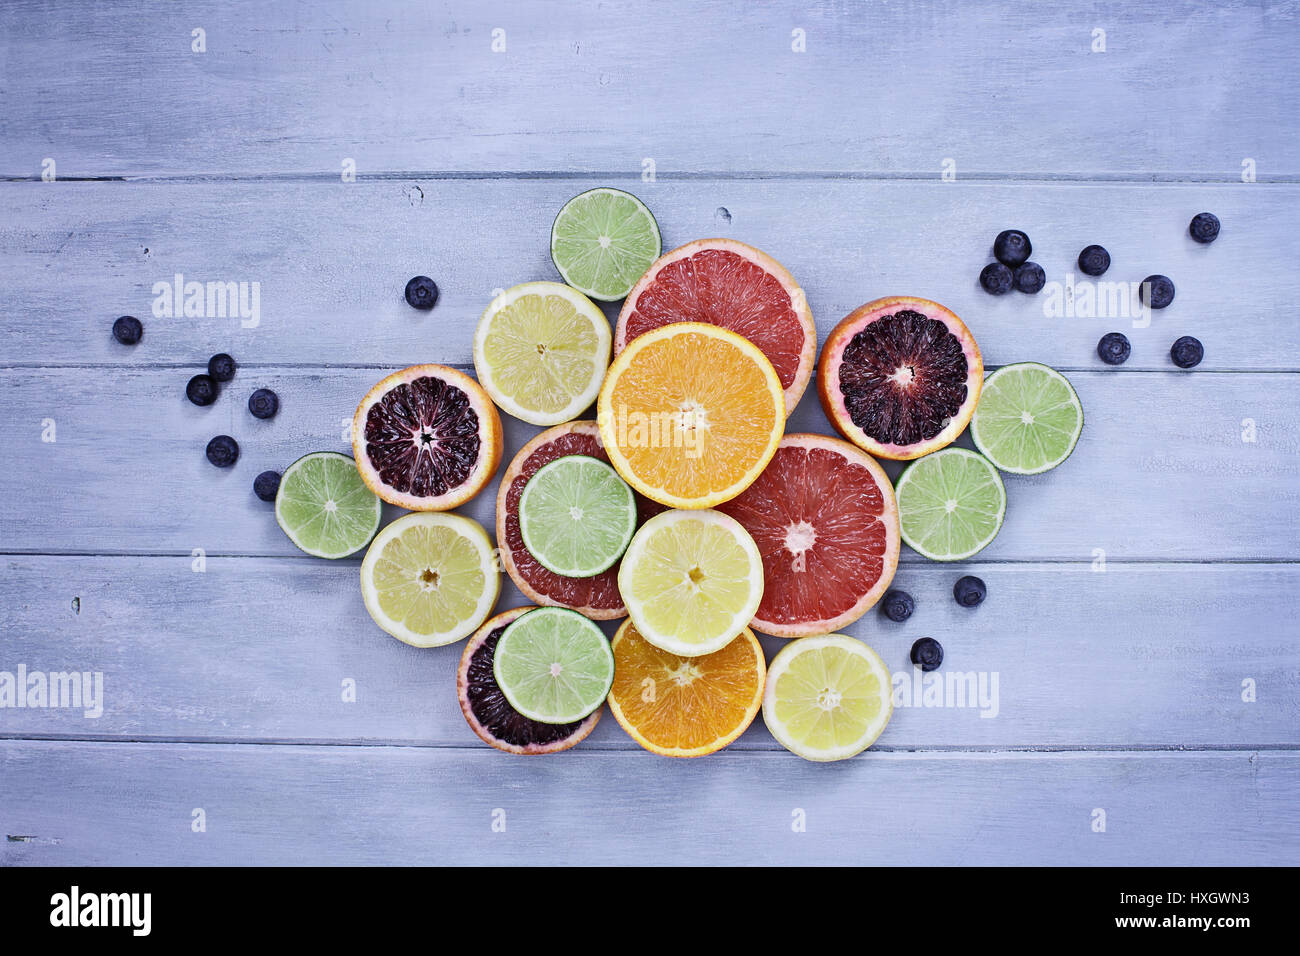 Variety of citrus fruits (orange, blood oranges, lemons, grapefruits, and limes) with blueberries over a blue rustic - Stock Image